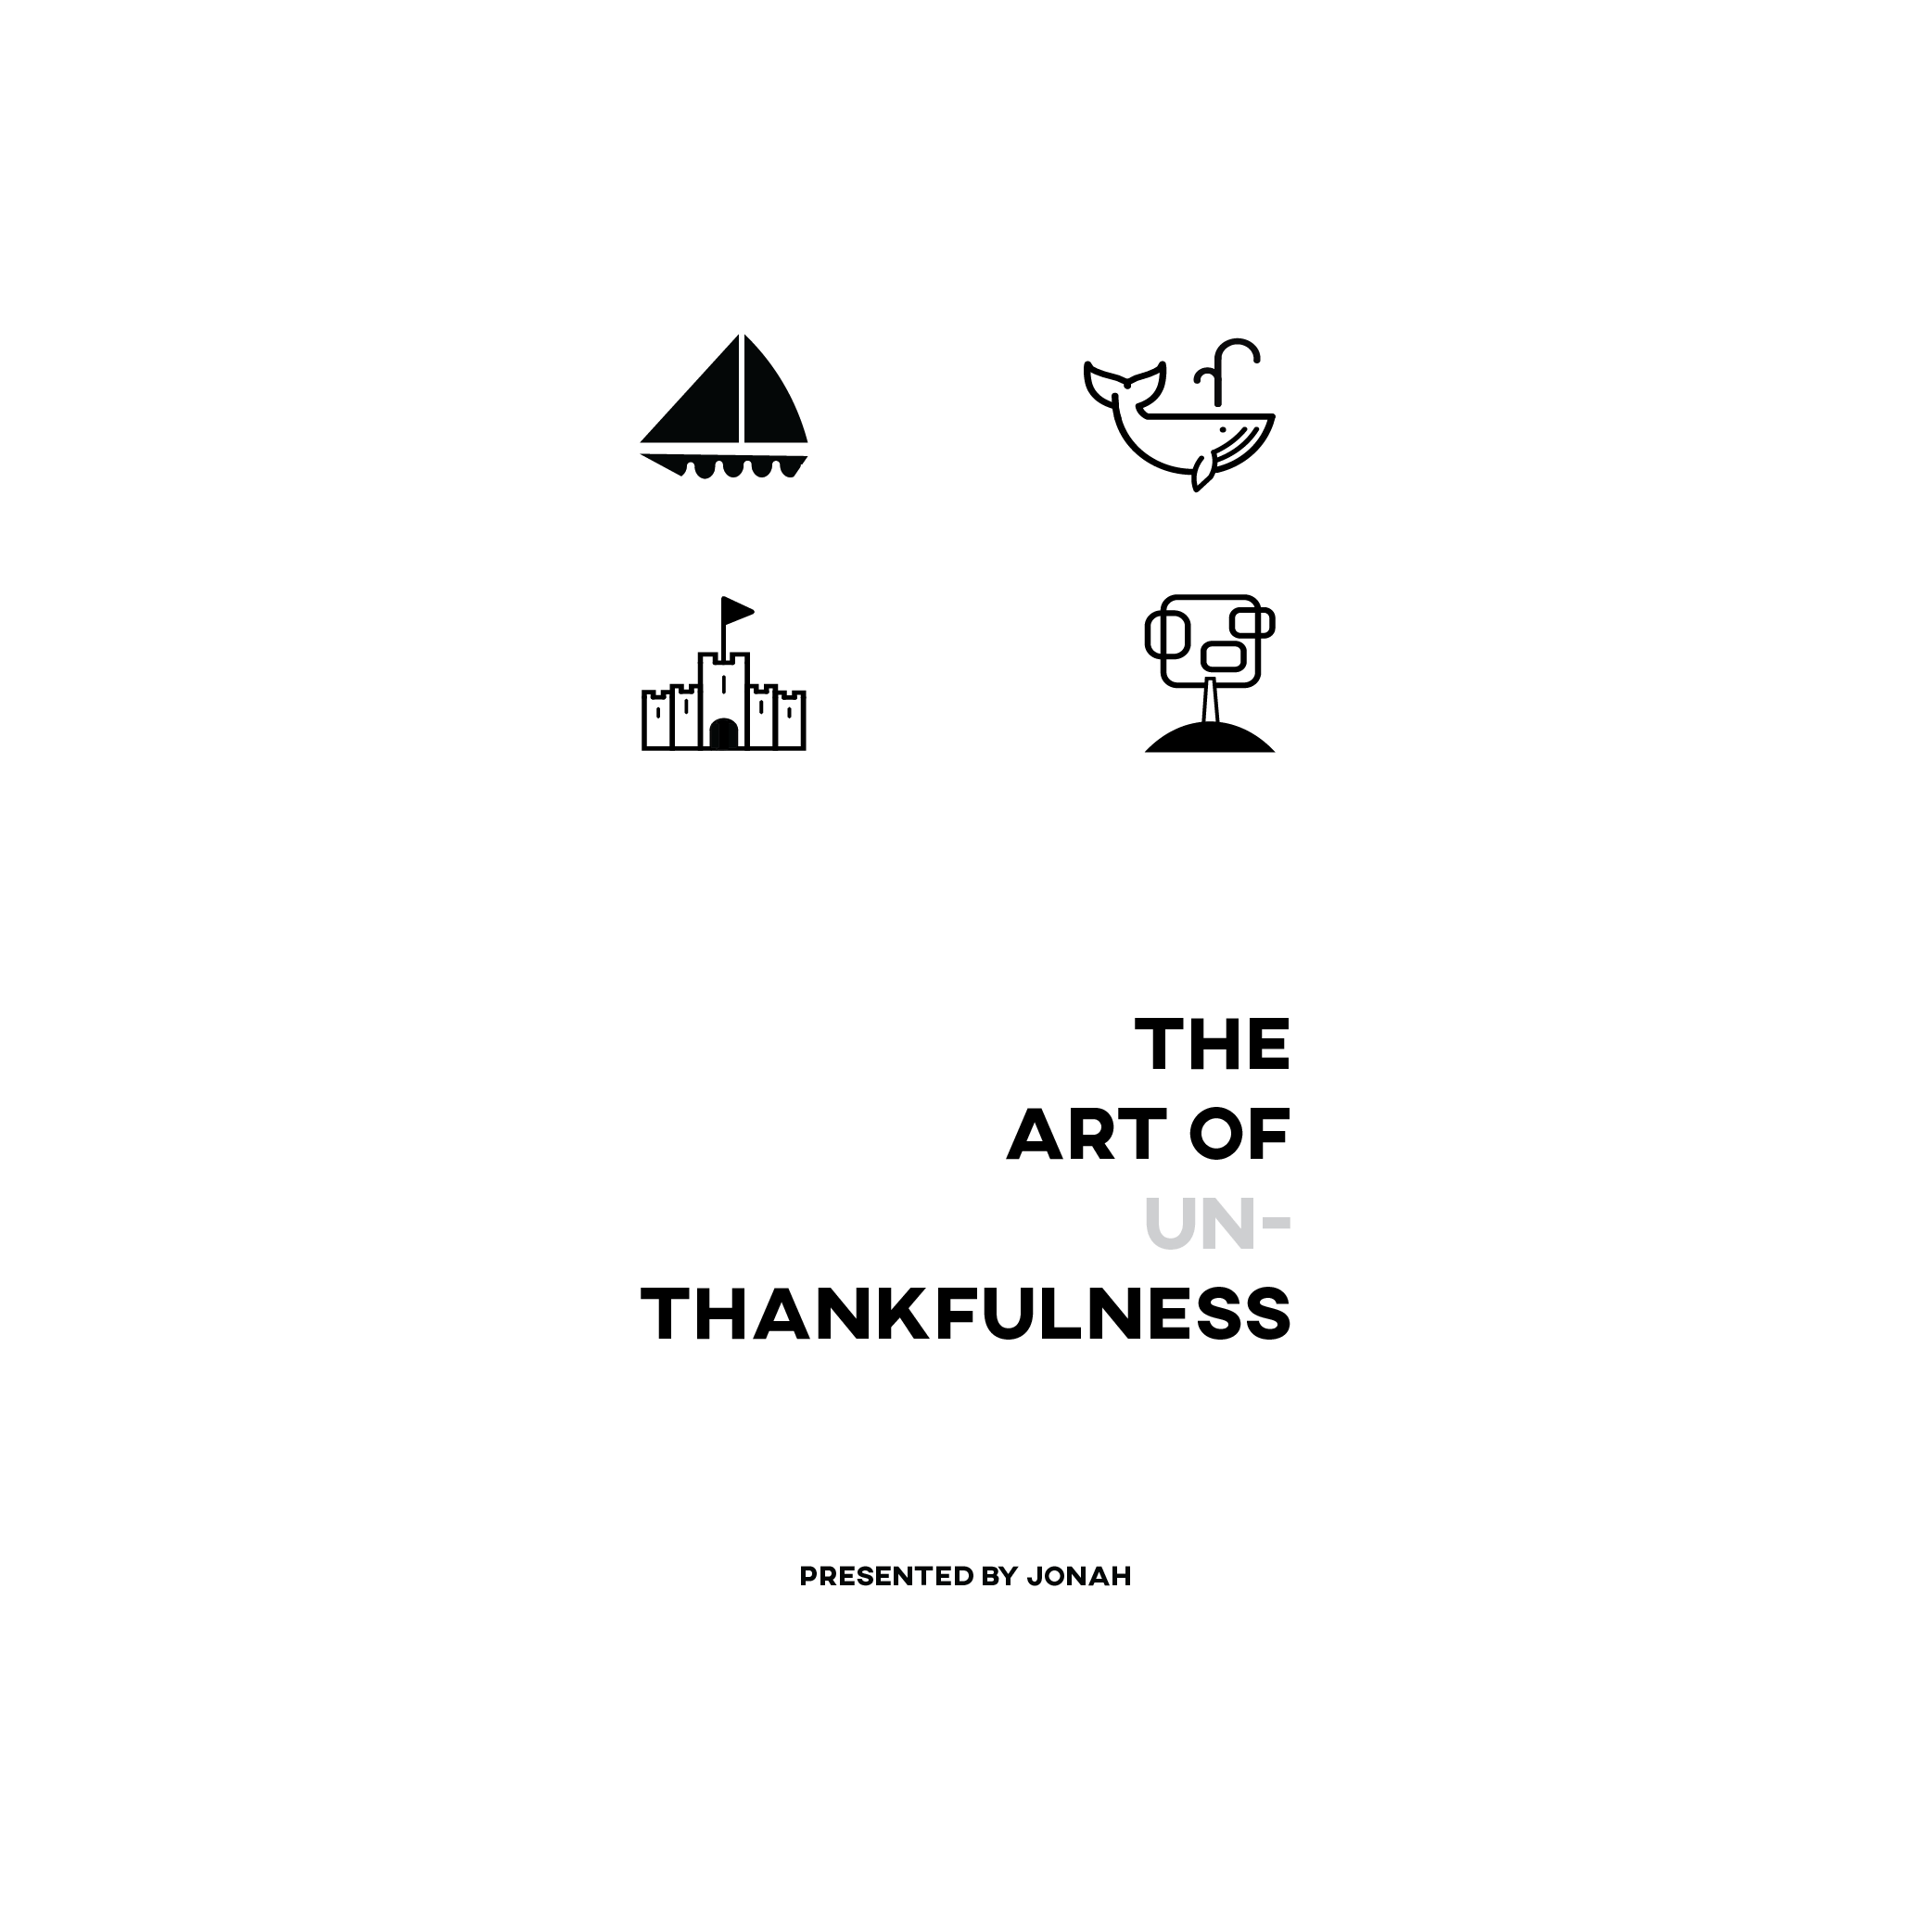 The Art of Unthankfulness